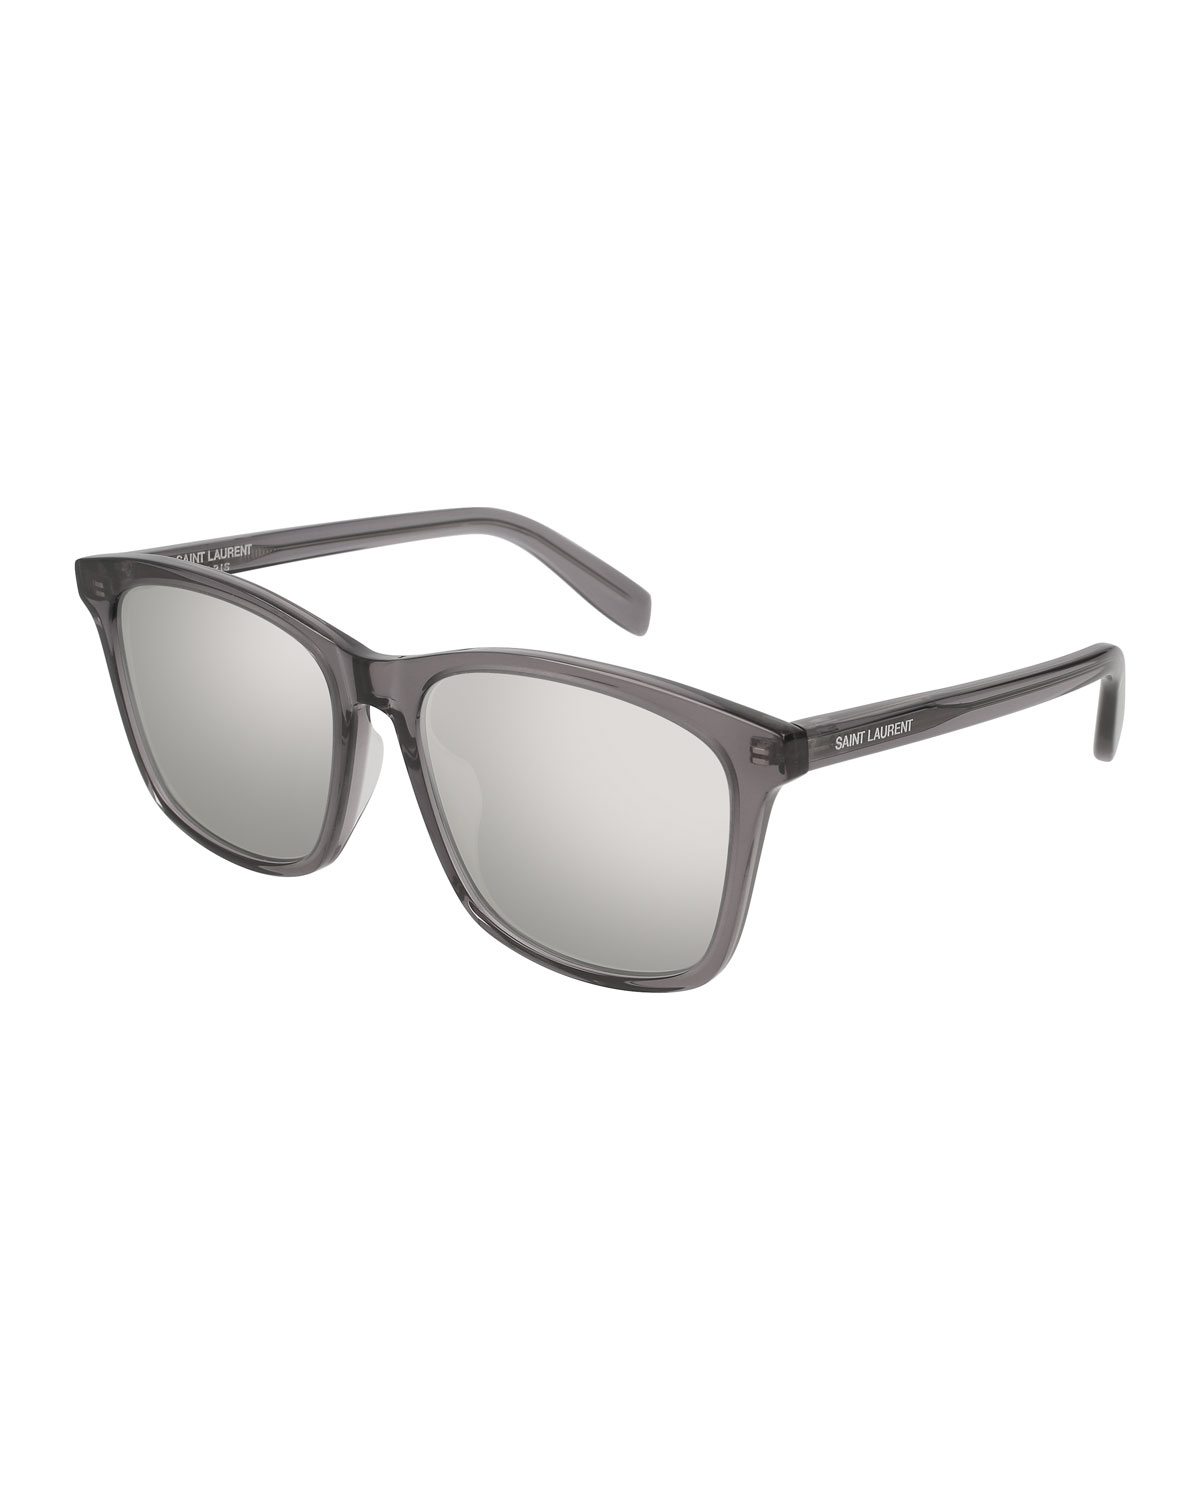 Universal Fit Slim Mirrored Sunglasses